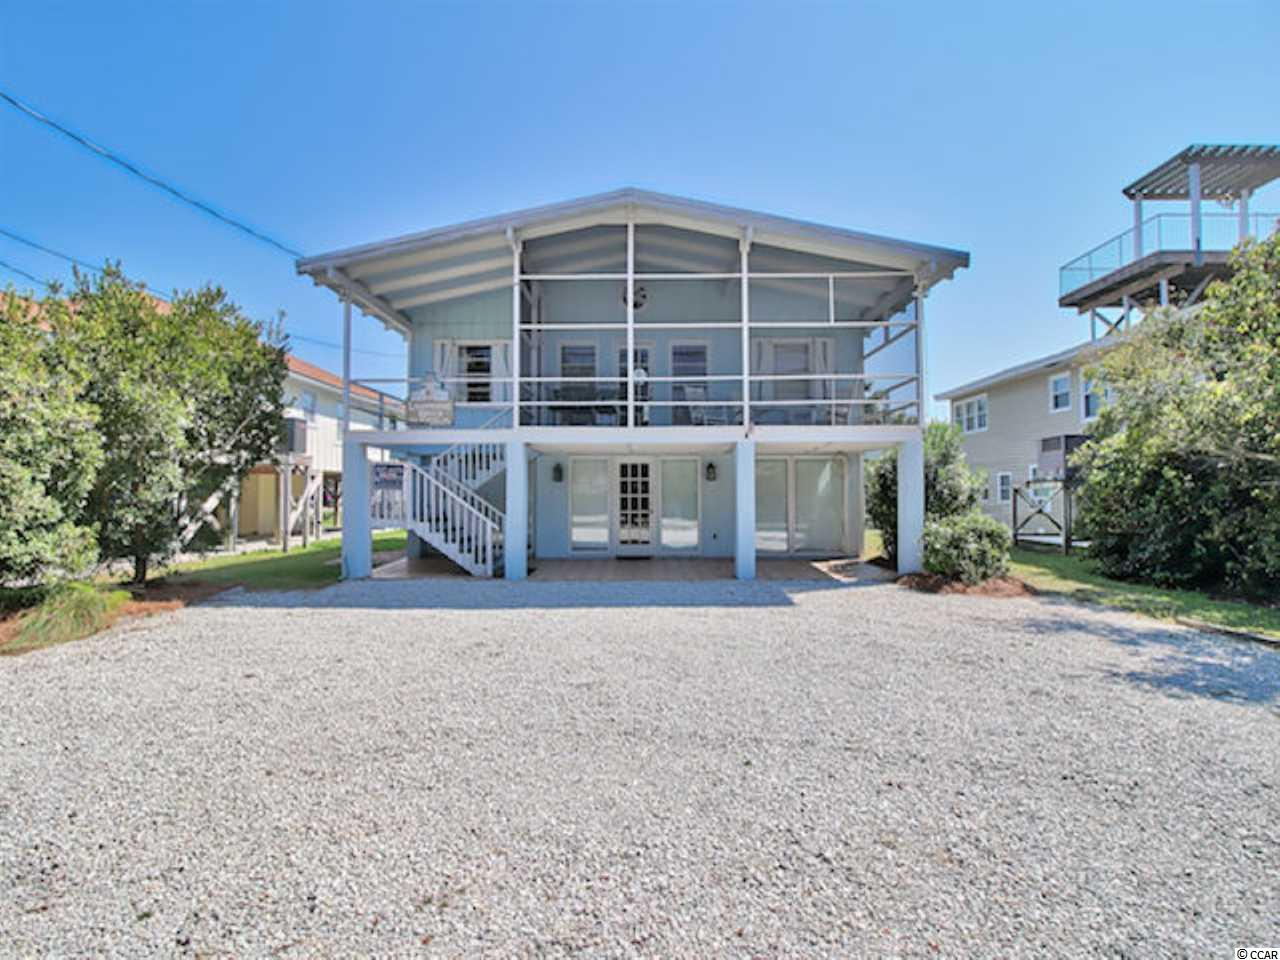 An amazing 7 bed, 4 bath home with a private heated salt-water pool, just yards from the beach in Pawleys Island! The upstairs living quarters features a spacious open living and dining area with high ceiling and tons of natural light, a vast relaxing screened porch with ceiling fan, a sizable open kitchen and 4 bedrooms that share 2 full baths. The first-floor level includes another open living space, a second large kitchen, and 3 bedrooms that share 2 full baths. The unique Widows Watch style deck on the very top provides a wonderful gathering space with an ocean view. The back yard is fenced for privacy and includes a convenient outdoor shower with hot & cold water. This property has multiple possibilities from a solid investment property or personal home in the upper space and investment rental of the lower space to a complete permanent home with a first-floor mother-in-law suite. The property is just a block and a half from the beach and just minutes from medical centers, shopping, dining, entertainment and all the Grand Strand has to offer!